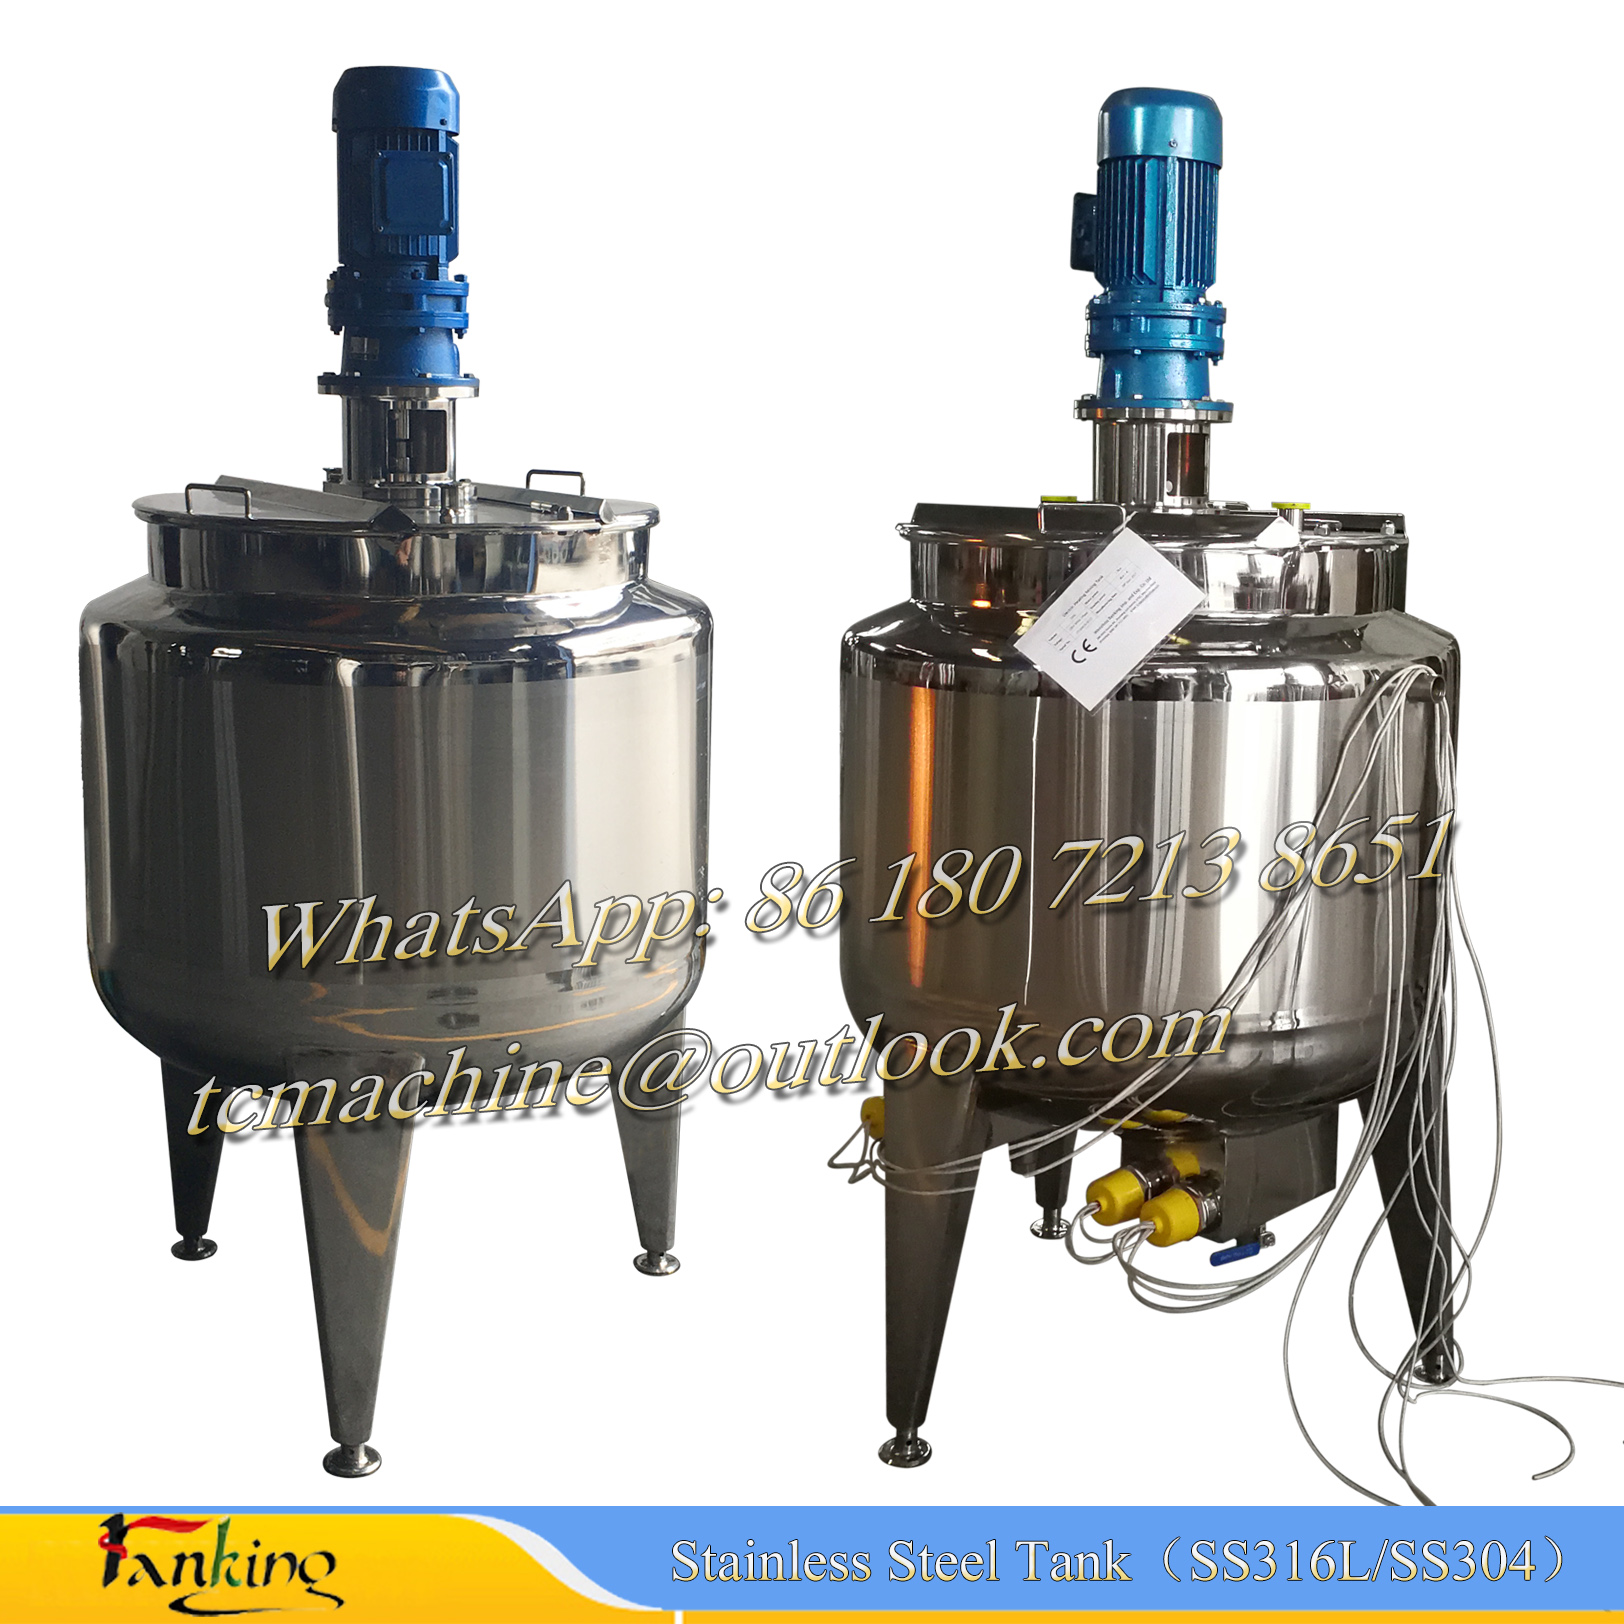 Stainless steel vessel for mixing / emulsifying / homogenizing / cooling / heating jacketed tanks